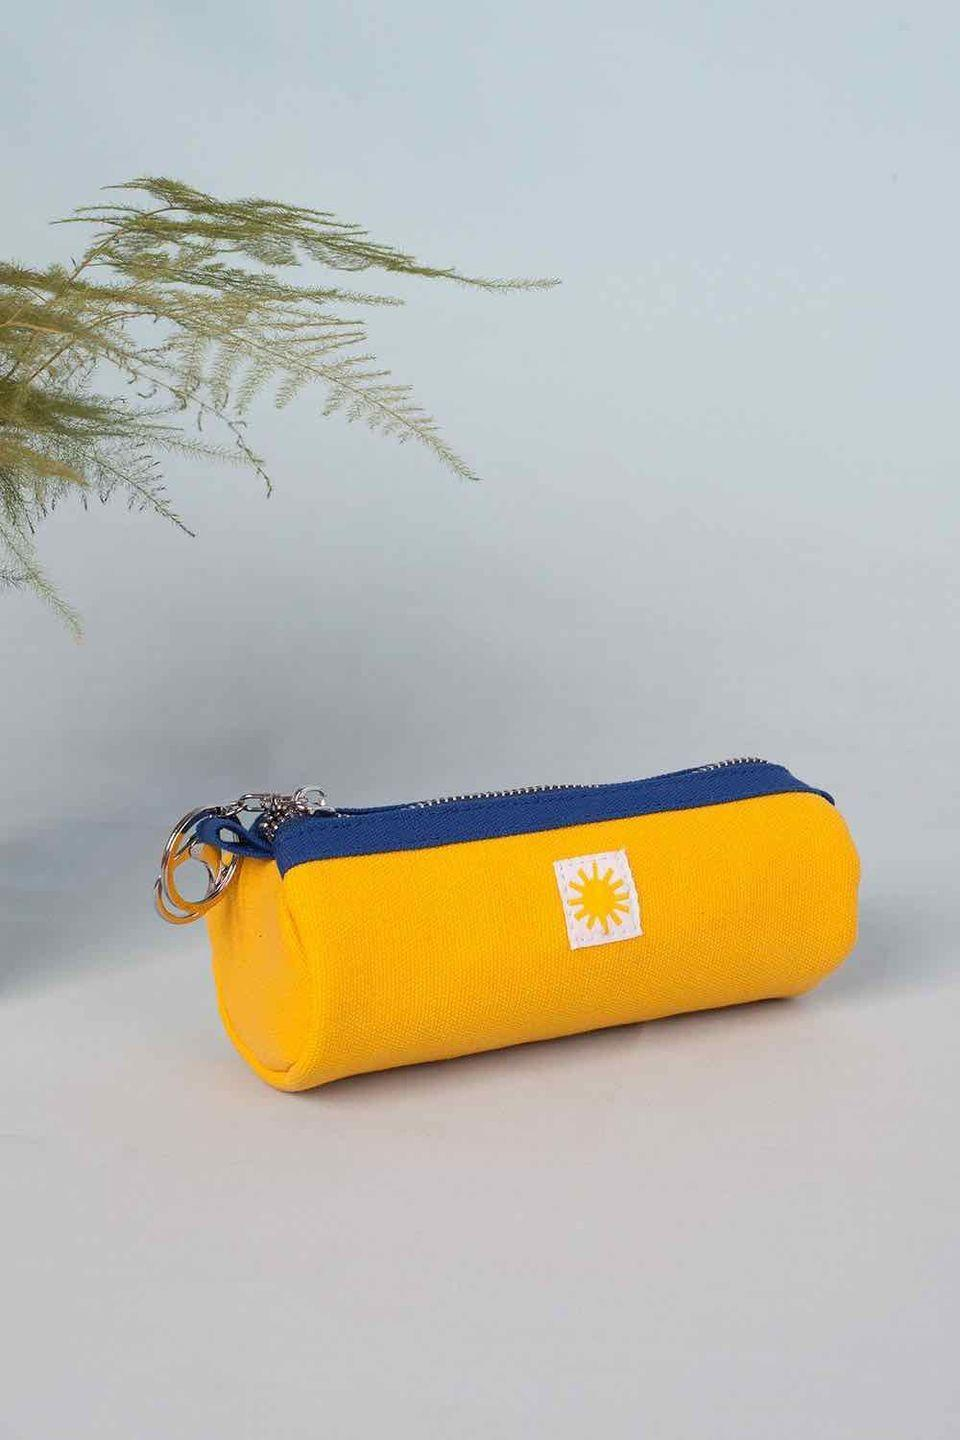 """<p>Hip east London-based clothiers LF Markey, known for its chic utilitarian garments, has applied its winning aesthetic to this sunny pencil case that will brighten up even the most dull work day. £12, <a href=""""https://lfmarkey.com/products/yellow-pencil-case"""" rel=""""nofollow noopener"""" target=""""_blank"""" data-ylk=""""slk:lfmarkey.com"""" class=""""link rapid-noclick-resp"""">lfmarkey.com</a></p>"""